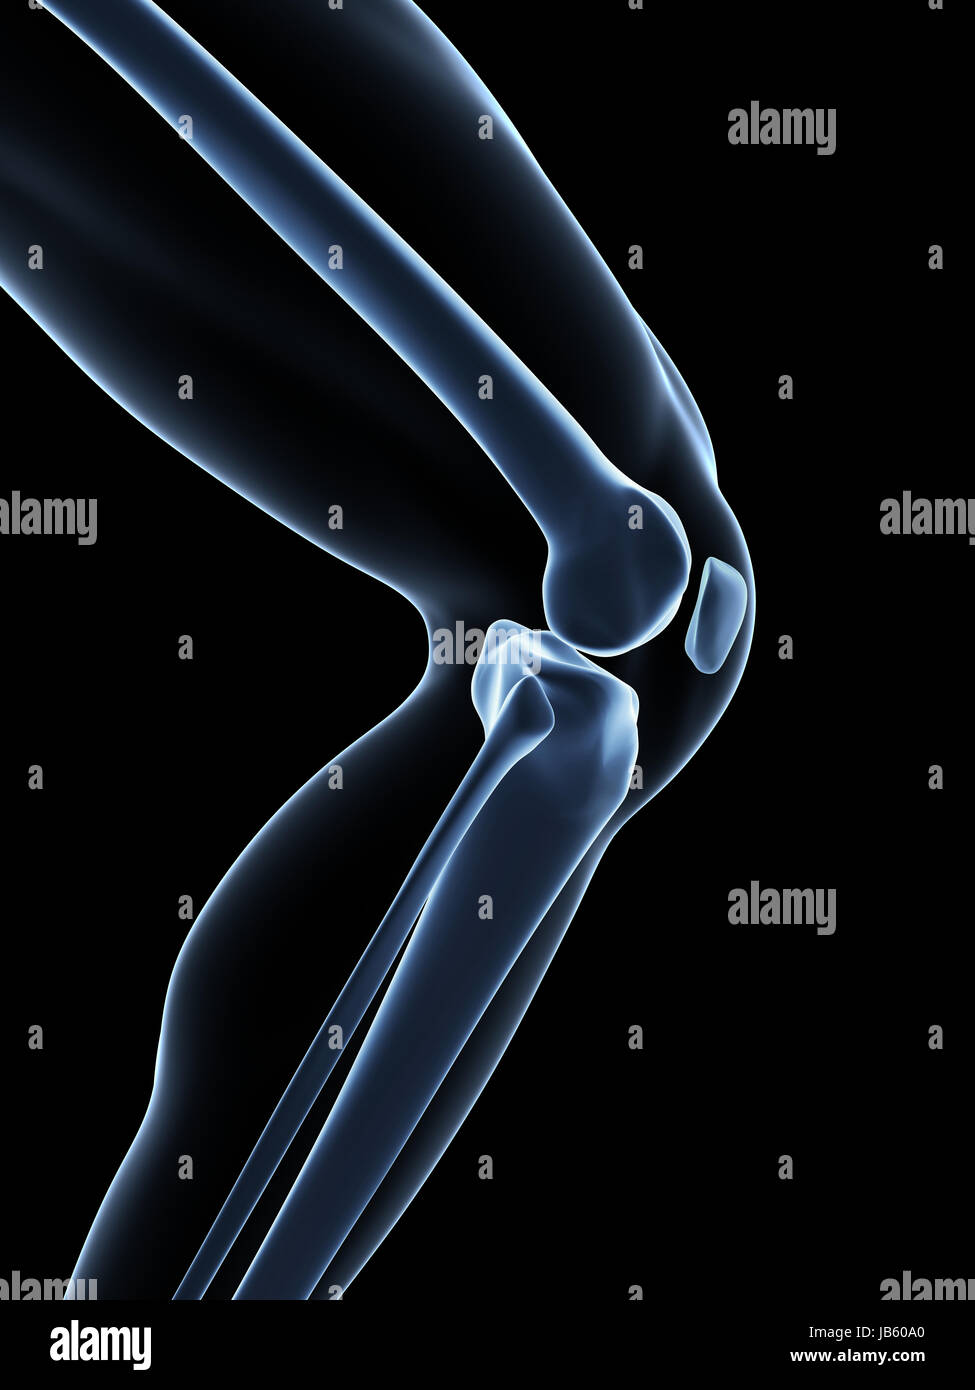 Lateral Collateral Ligament Stockfotos & Lateral Collateral Ligament ...